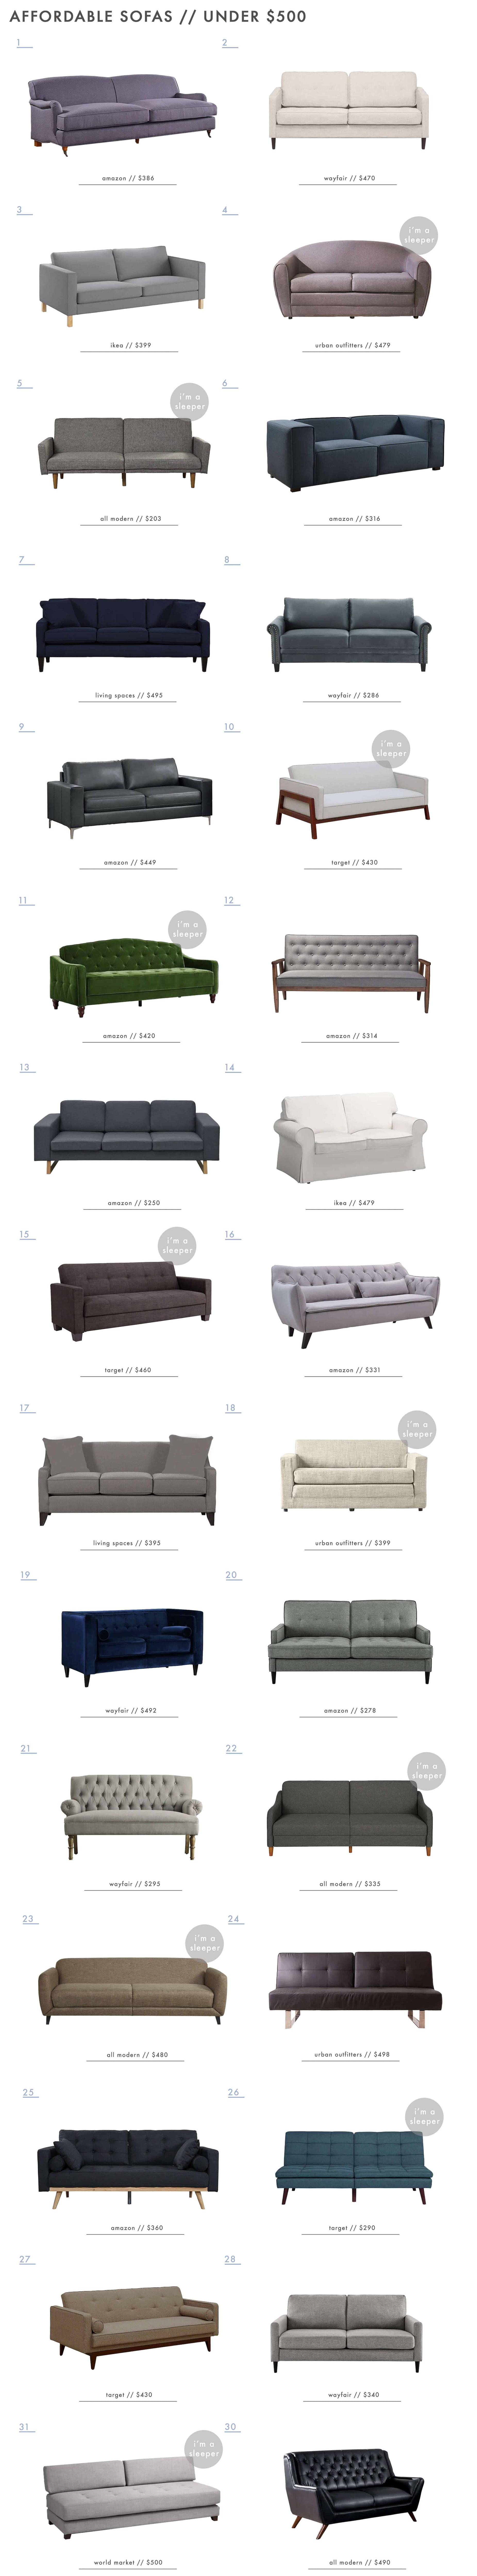 88 Affordable And Budget Friendly Sofas Under 1000 Emily Henderson